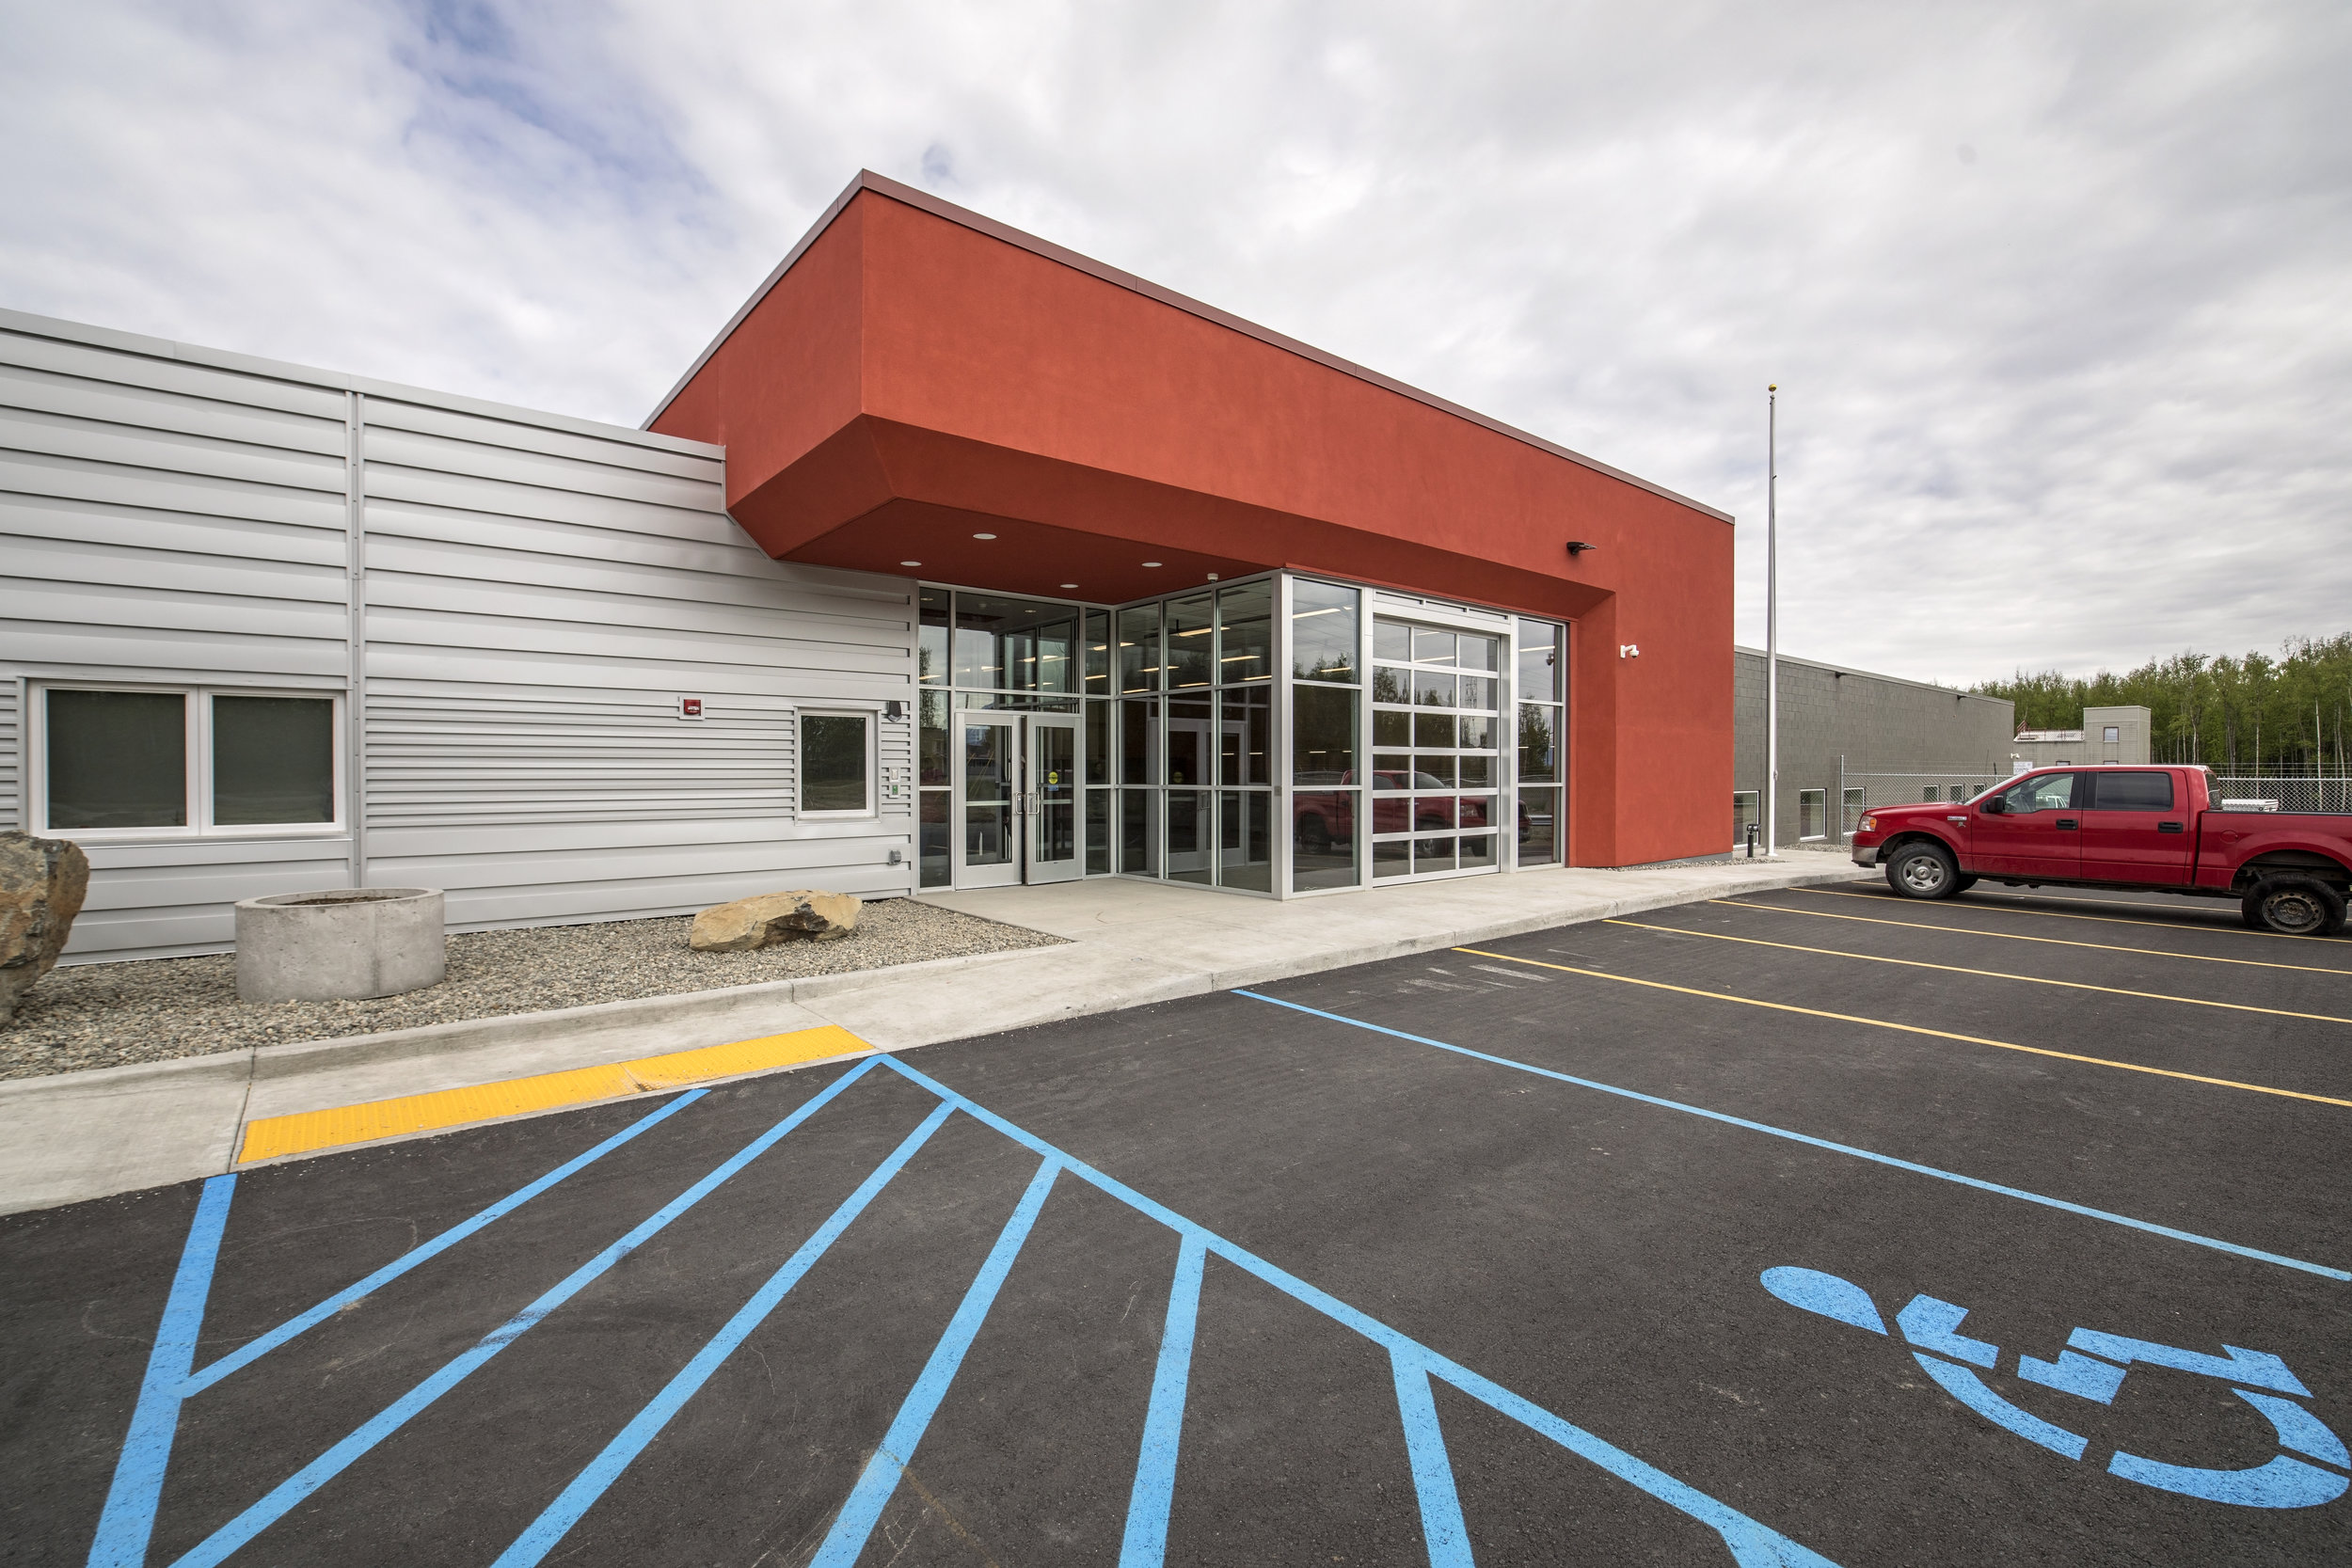 Fire Station 6-2 - New Fire Station 6-2 located at 4568 South Knik-Goose Bay Road, in Wasilla, Alaska. The design shall accommodate fire vehicles, drive thru apparatus bays, living quarters, training rooms, and administrative offices.